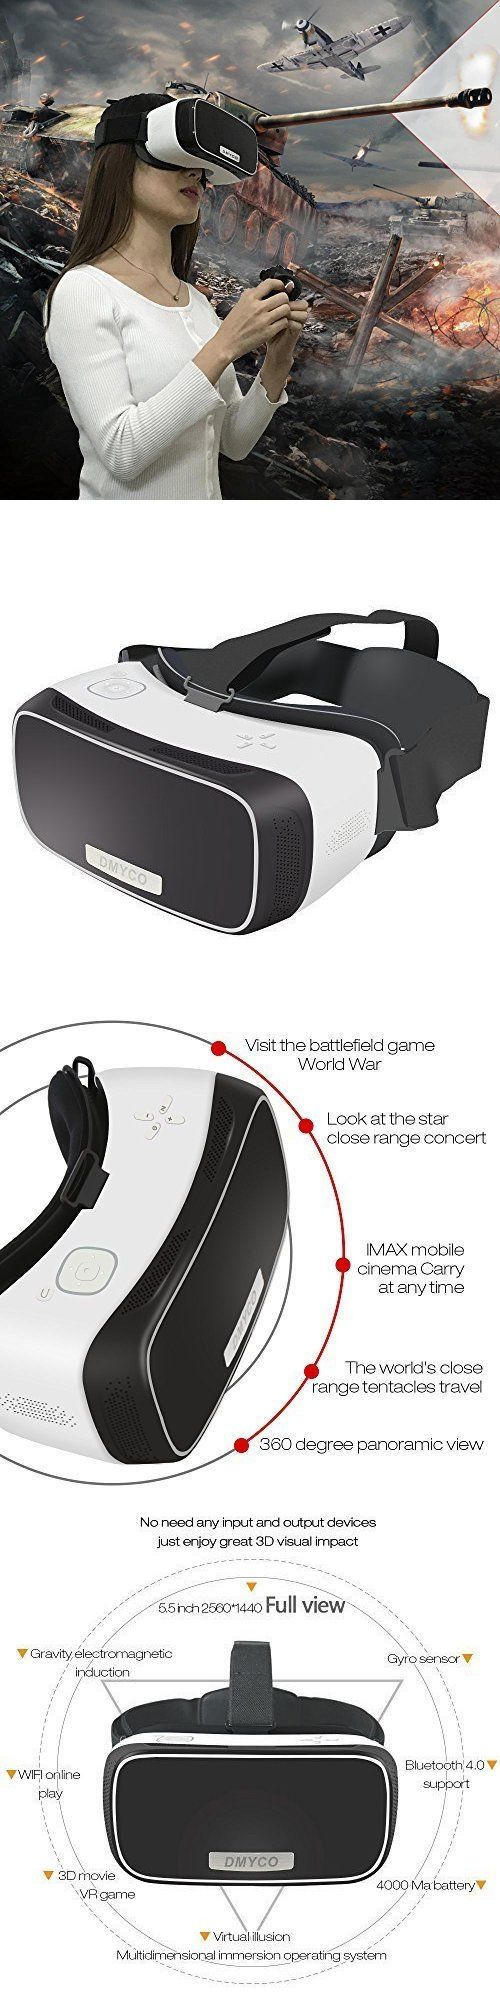 PC and Console VR Headsets: Ps4 Xbox Vr Virtual Reality 3D Headset Glasses 1080P Hdmi Wifi 360 View Youtube -> BUY IT NOW ONLY: $249.9 on eBay!